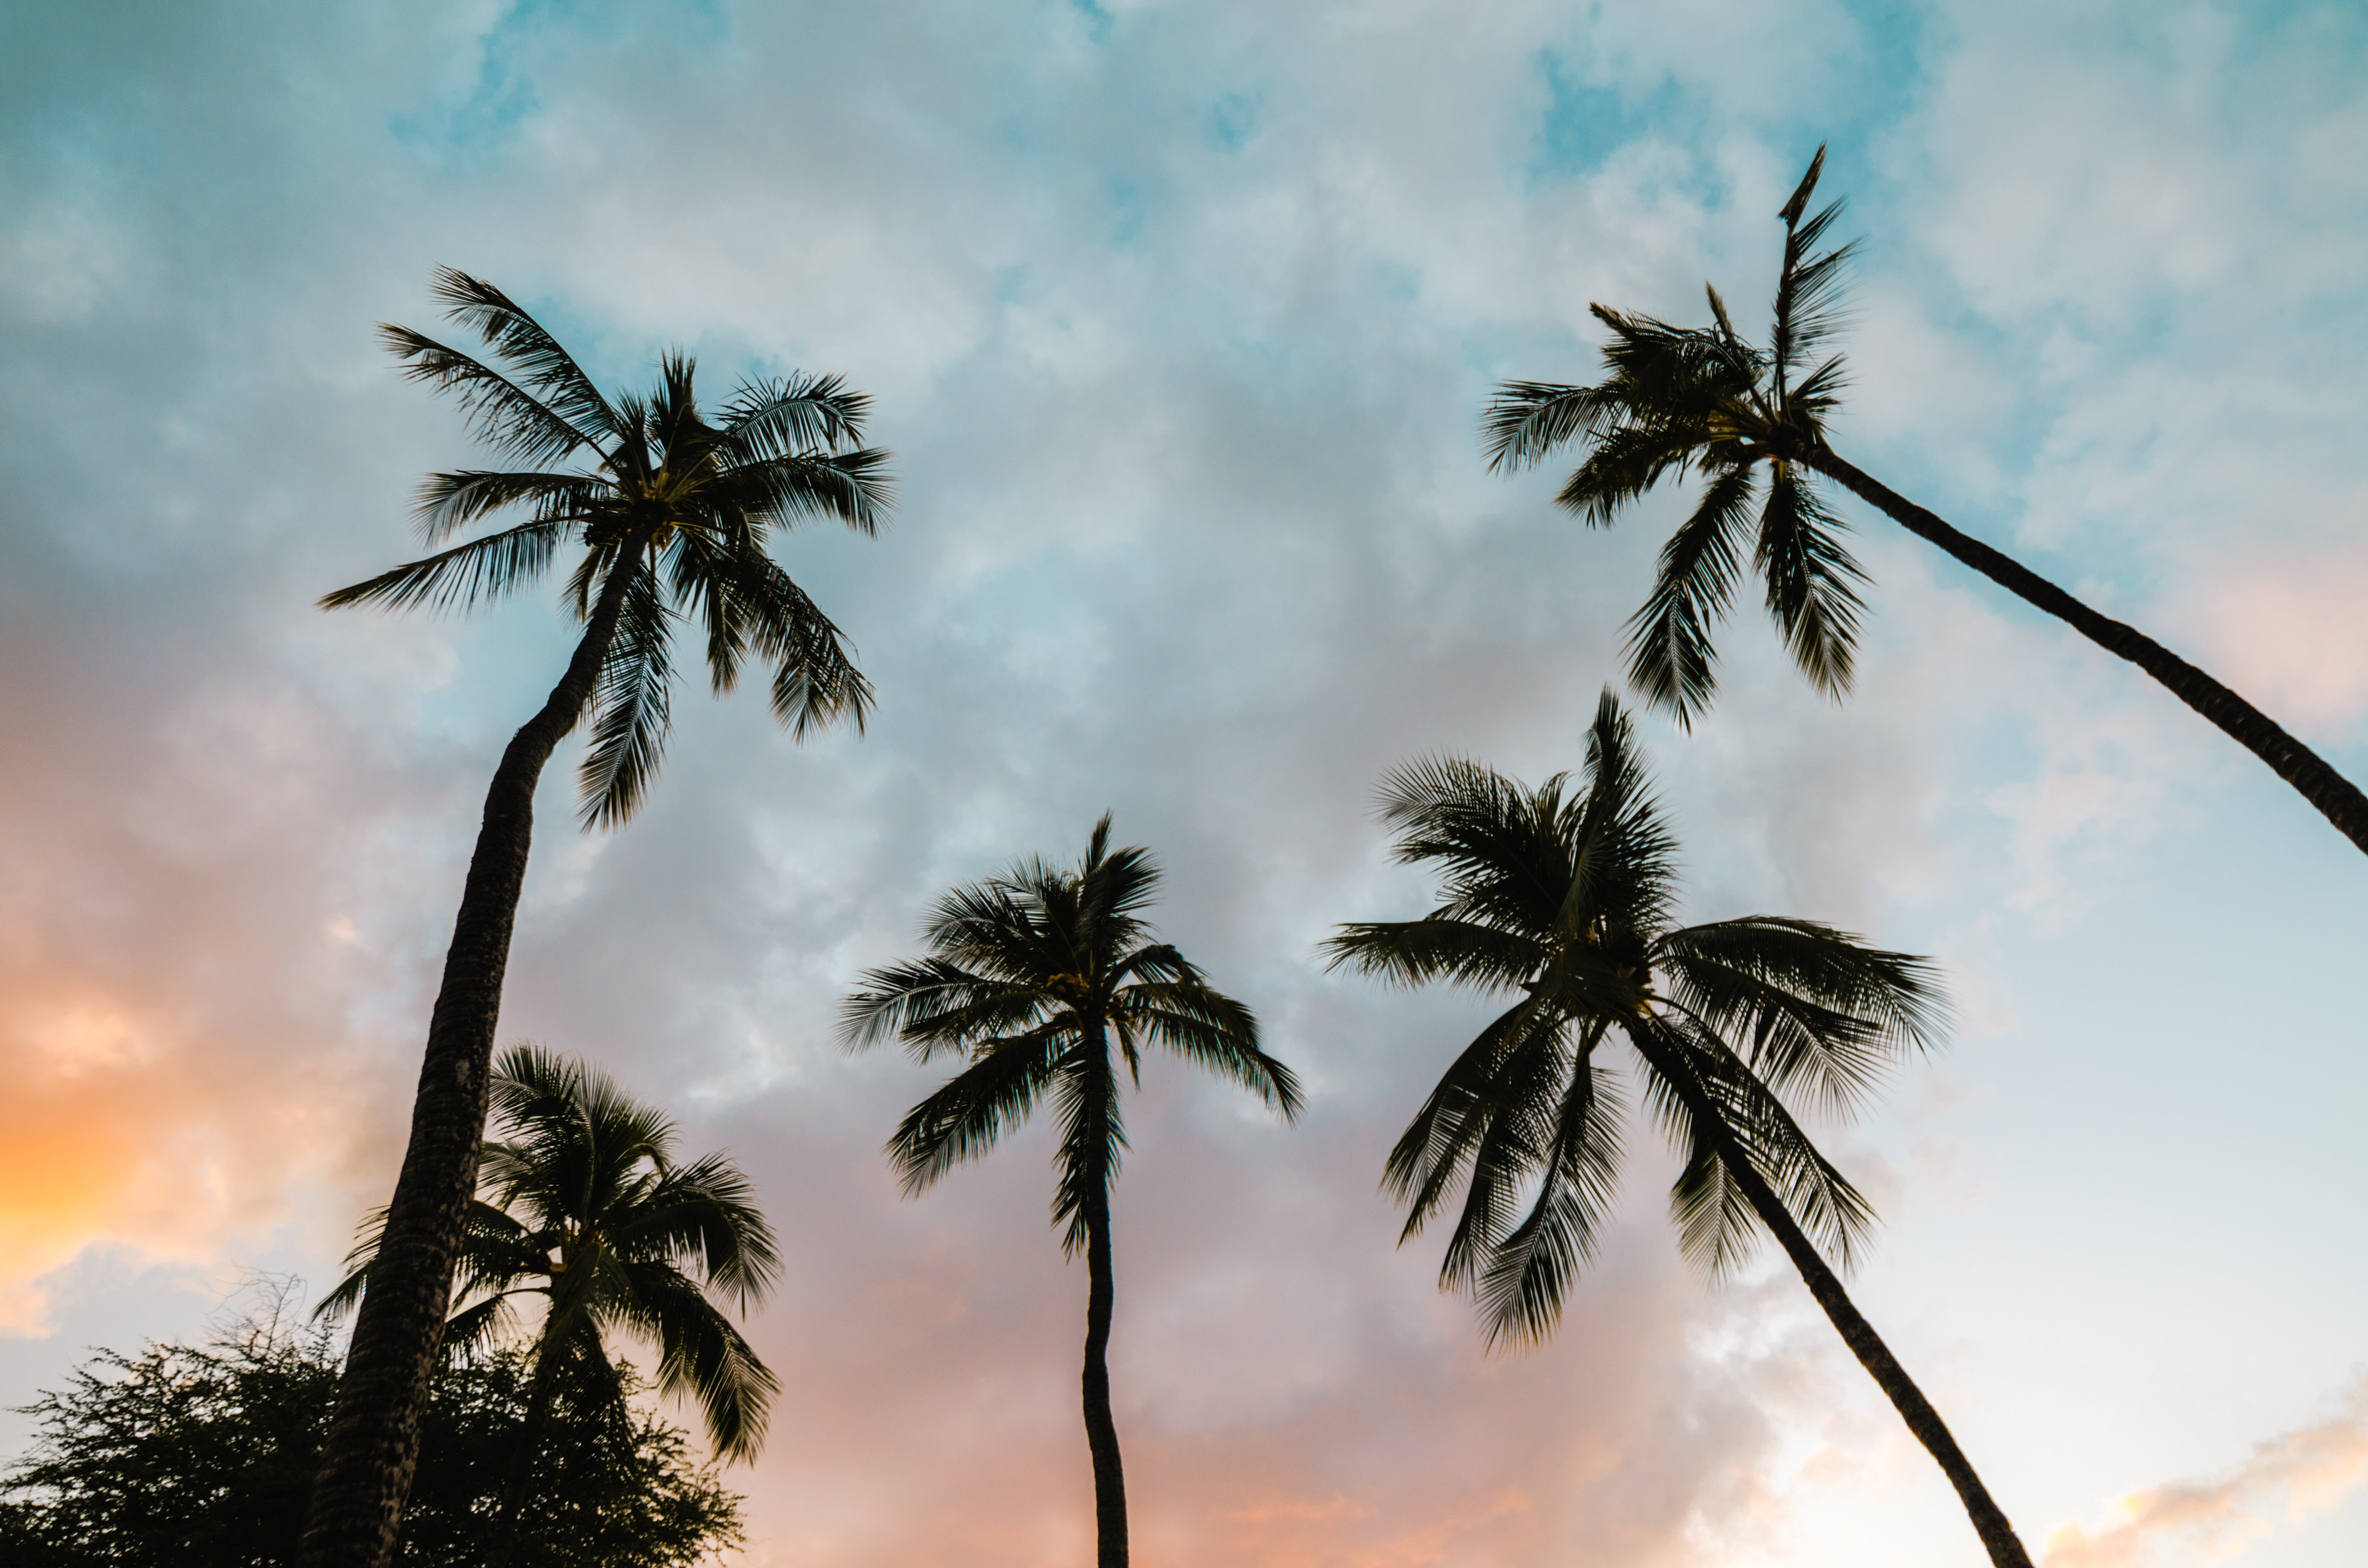 Looking up at a blue-orange cloudy sky with tall pine trees in Hawaii